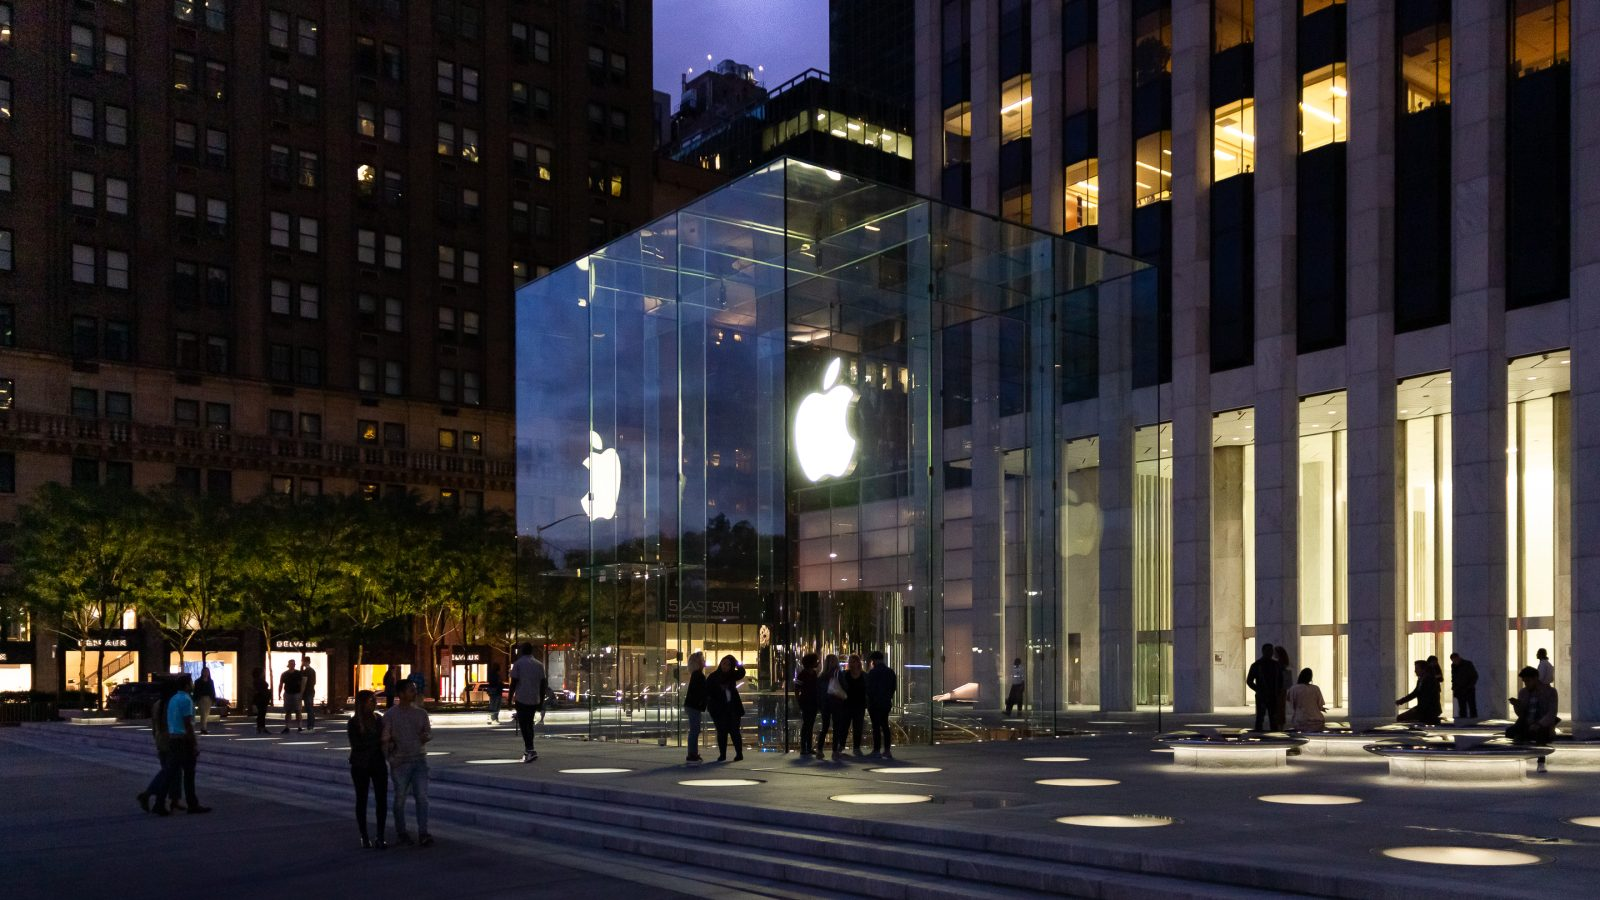 Apple Black Friday: We predict this year's Mac, iPad, and Apple Watch deals